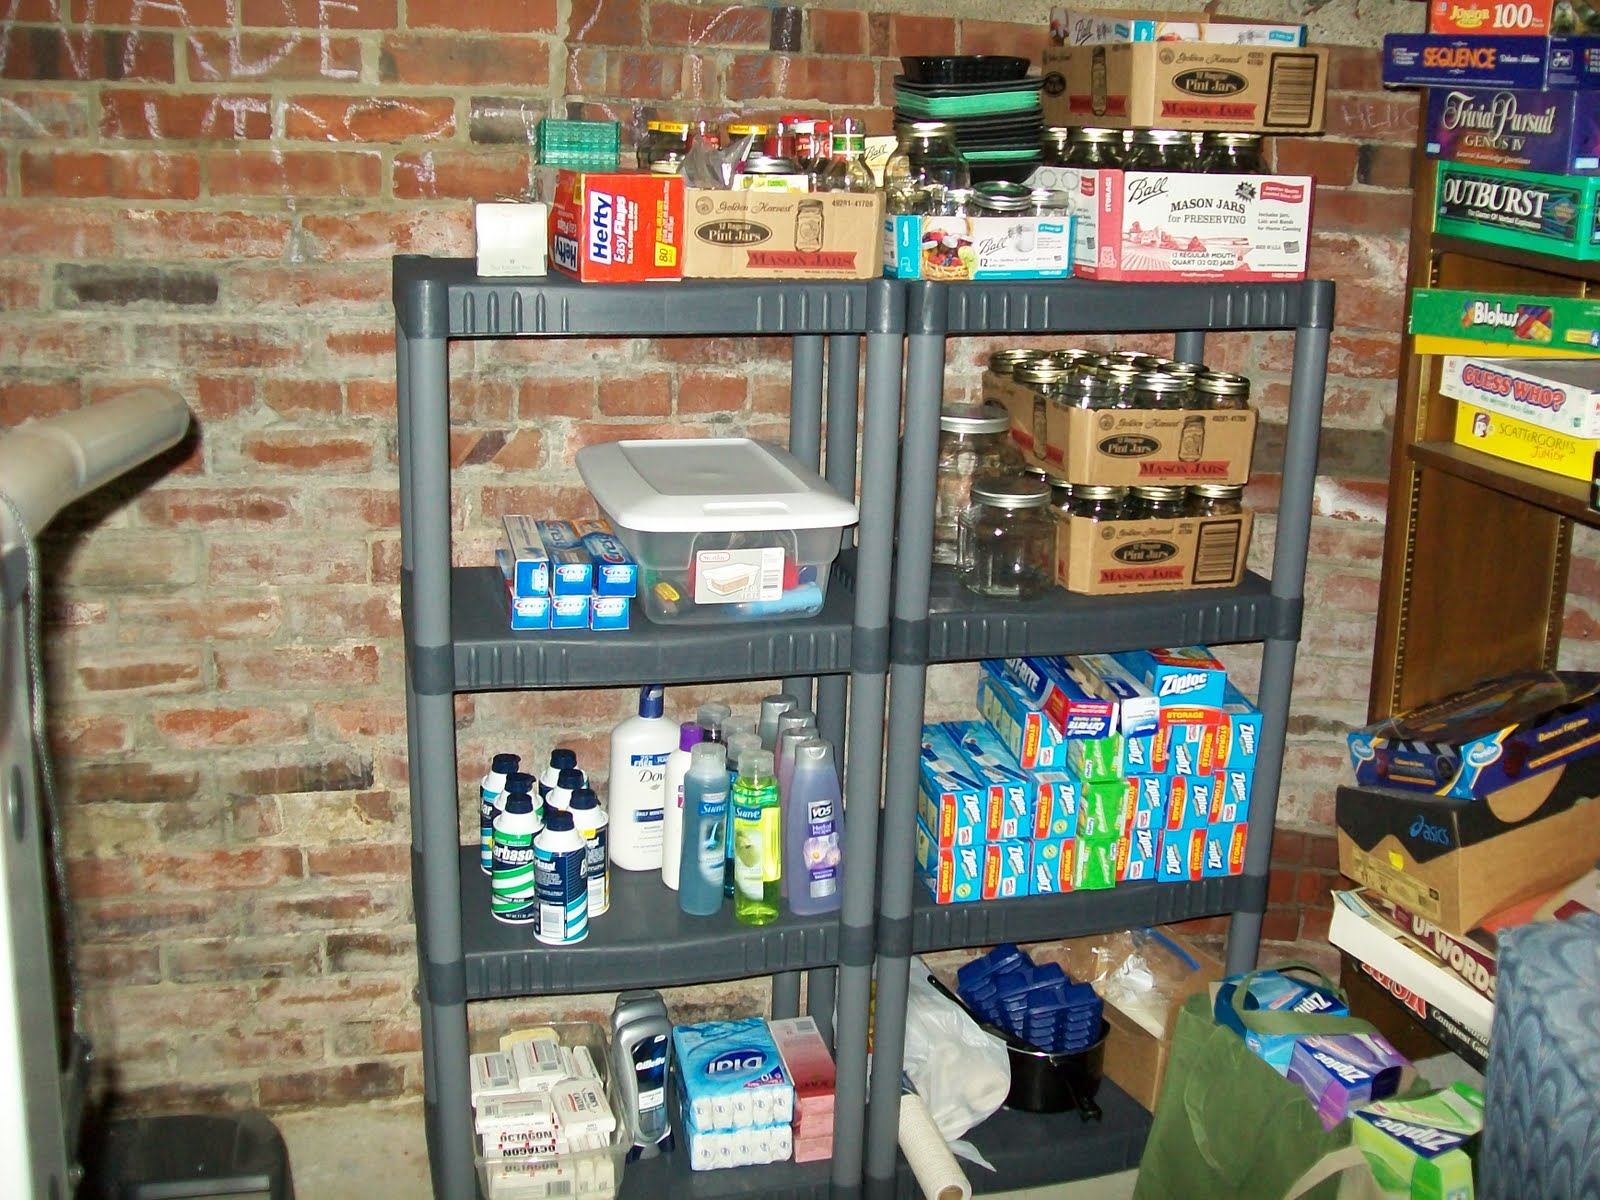 The Path to Frugality: Pantry Principle and Stockpiling - Part 1